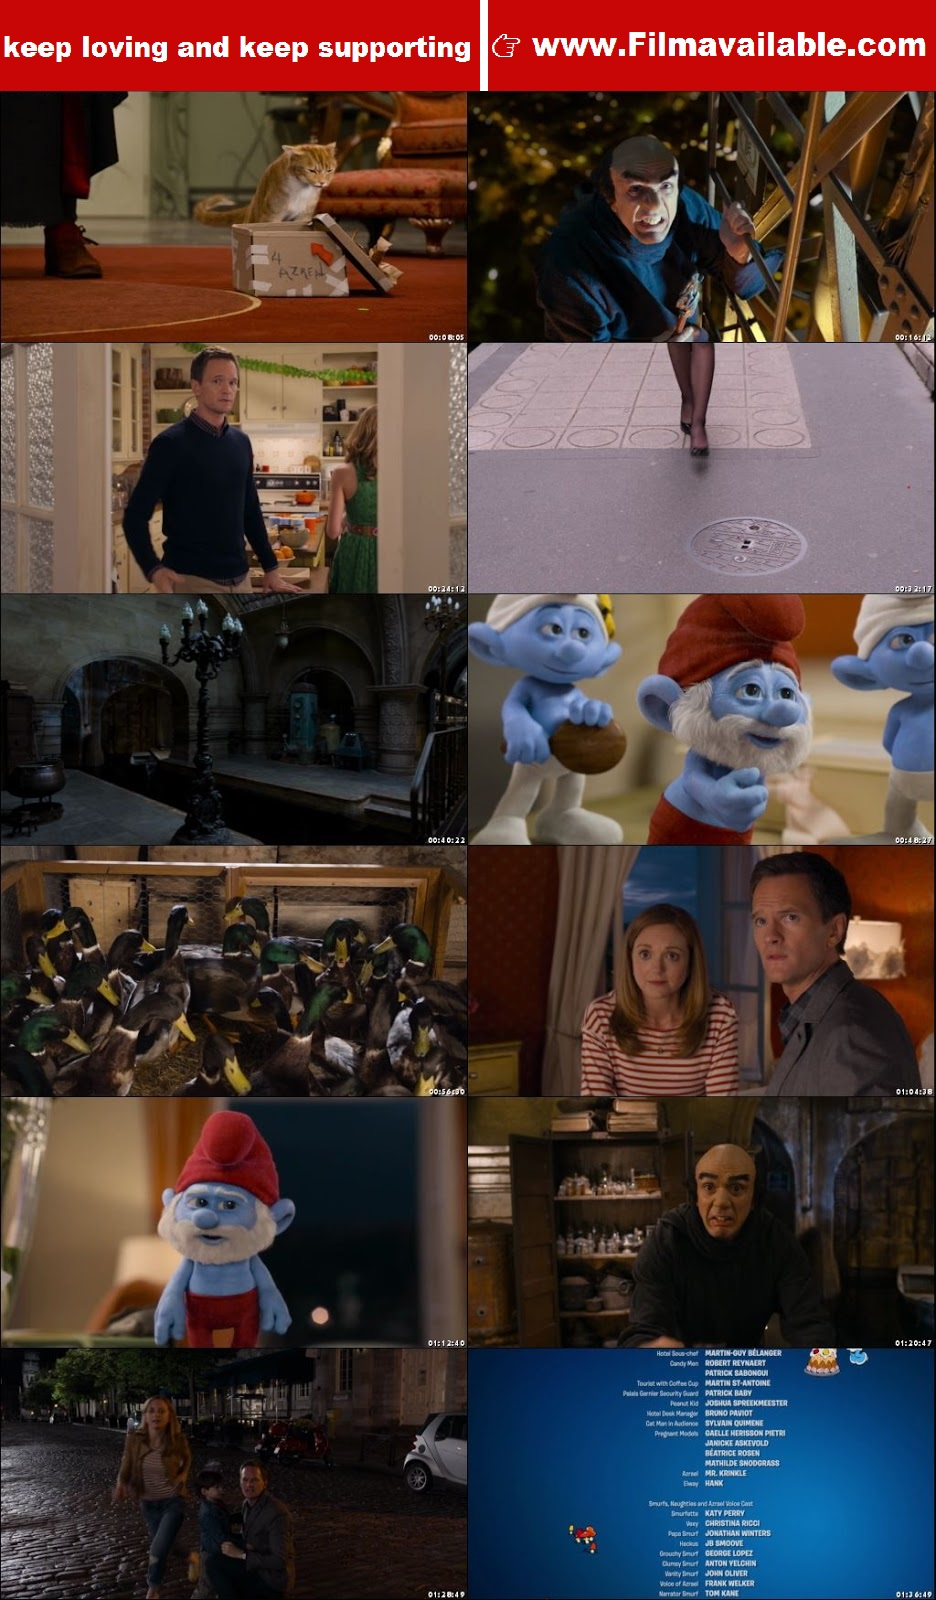 The Smurfs 2 2013 latest movies free download, The Smurfs 2 2013 hd movies download, The Smurfs 2 2013 new movie download,The Smurfs 2 2013 download free movies online, The Smurfs 2 2013 hd movies free download